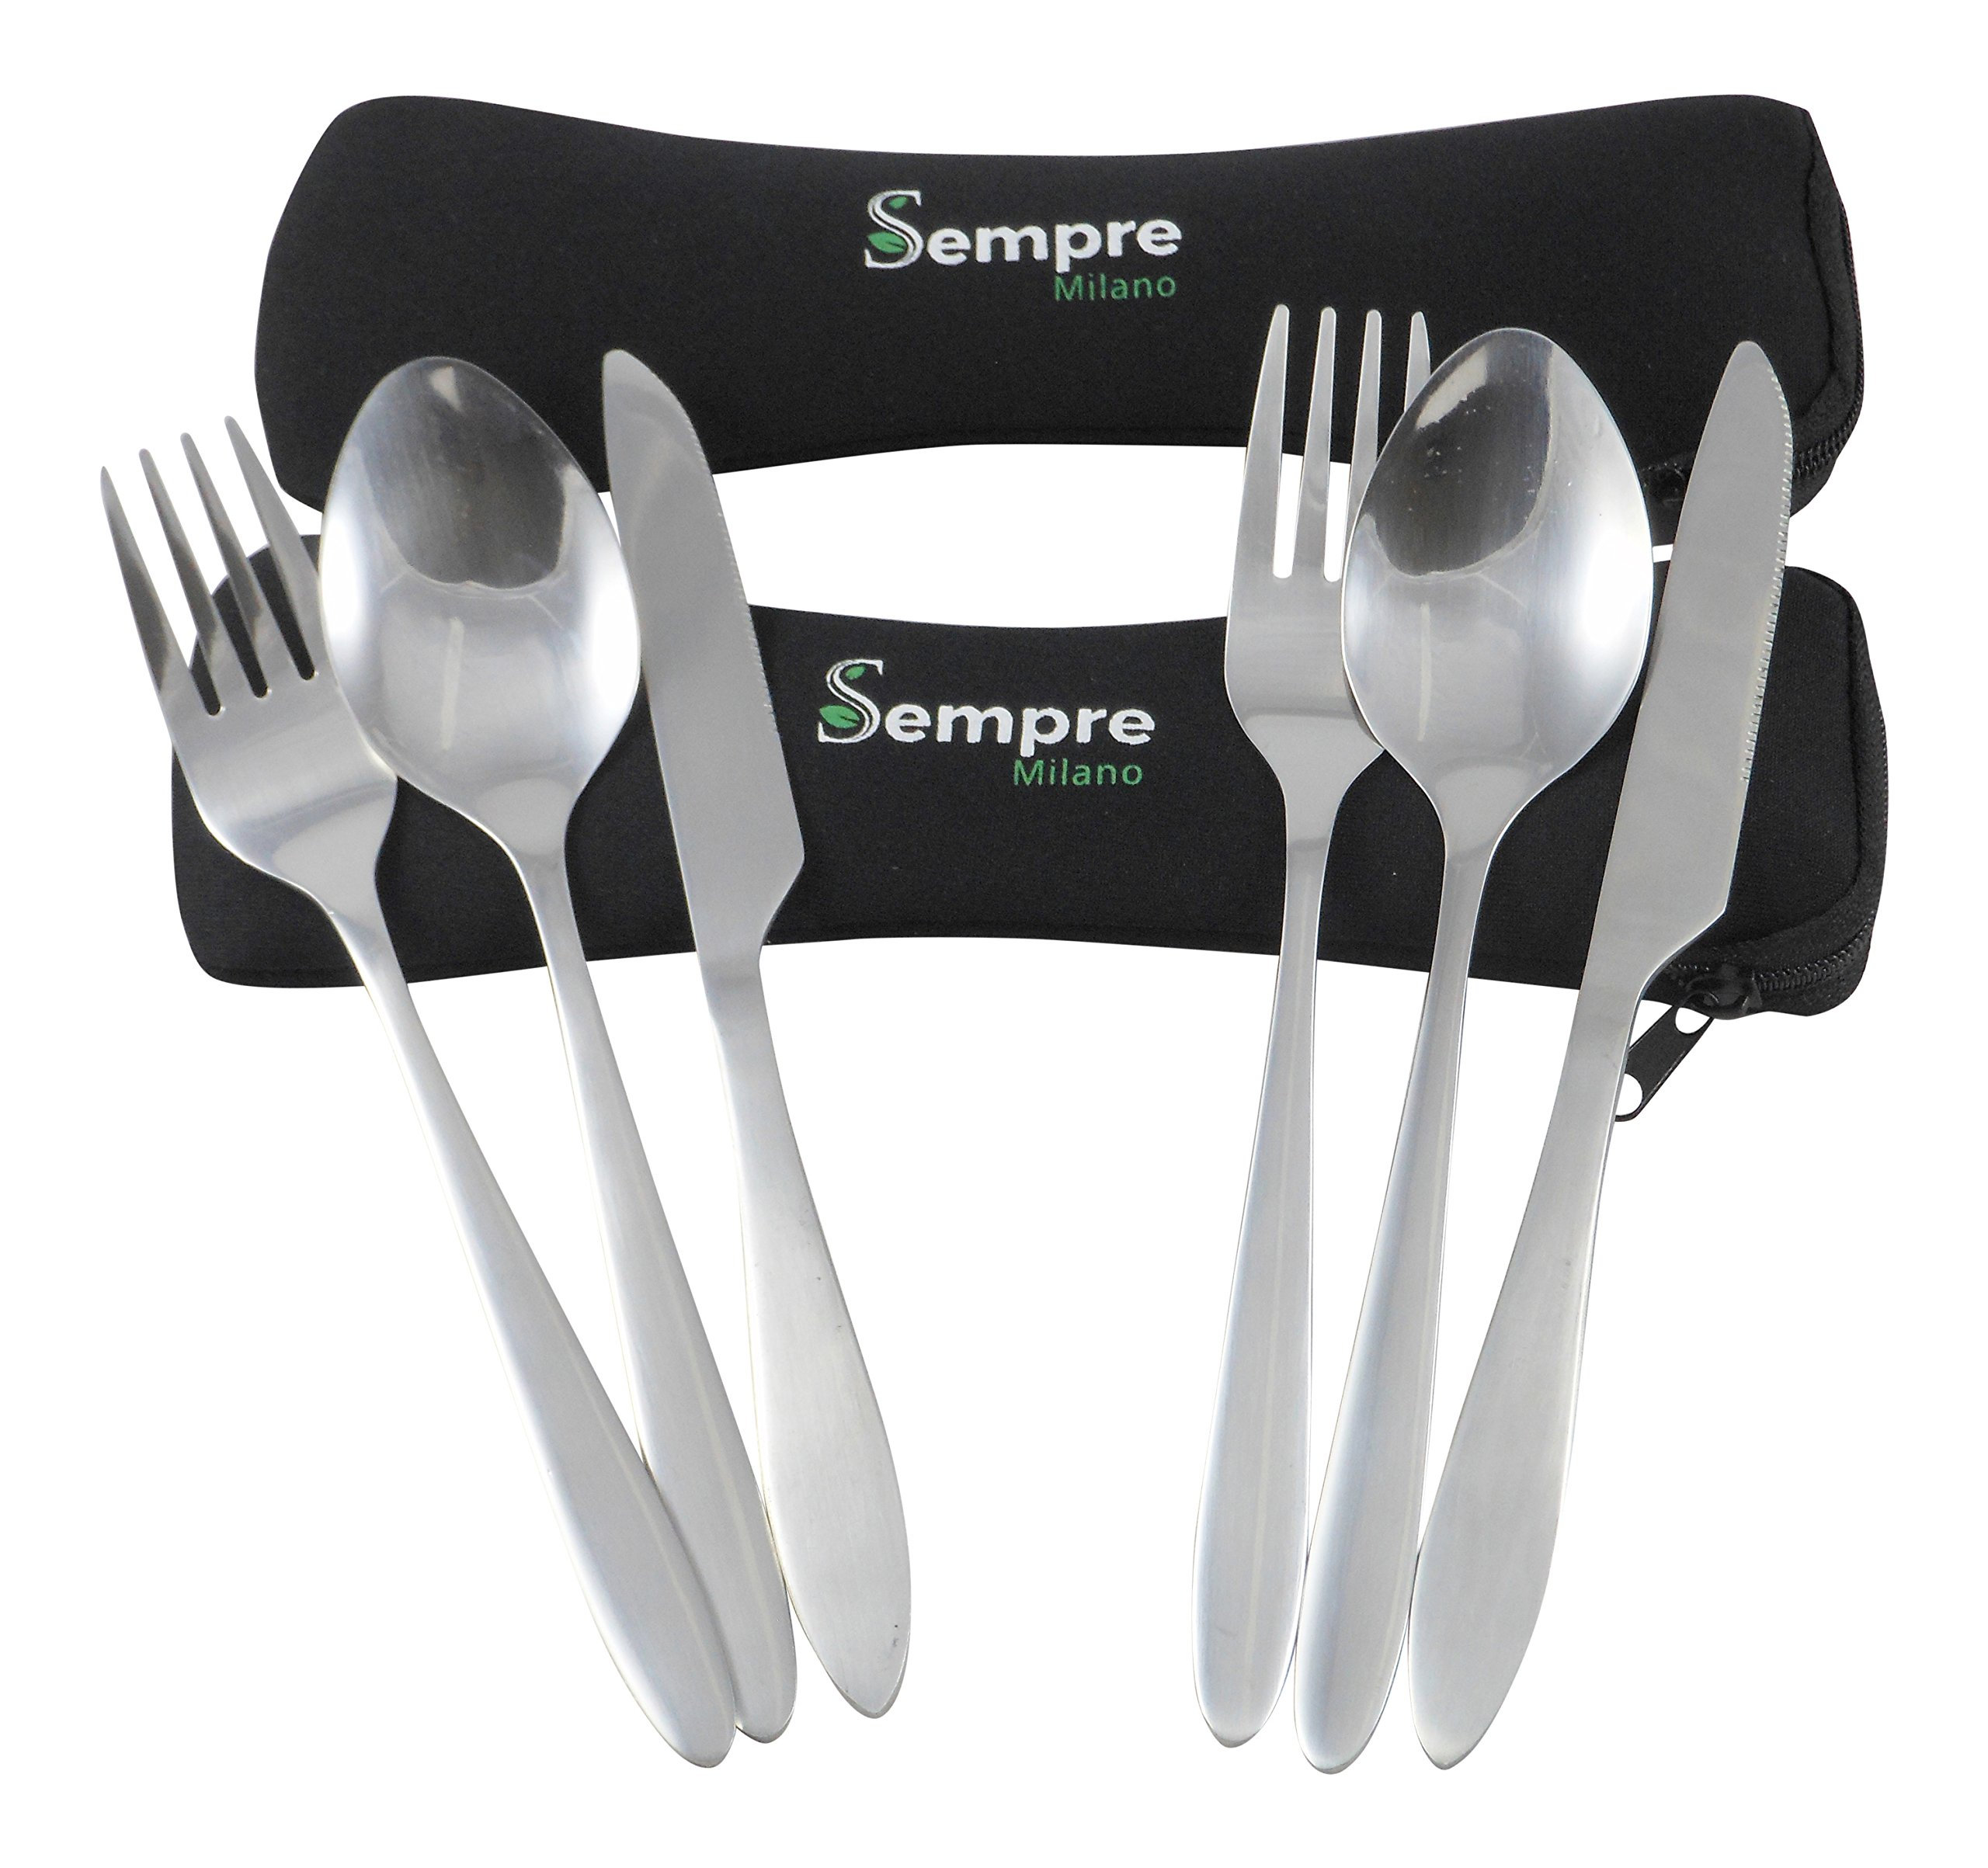 3 Piece Stainless Steel (Knife Fork Spoon) Reusable Lunch Box Utensils, Lightweight Portable Travel Camping Cutlery Set with Neoprene Case By Sempre (2 Pack)